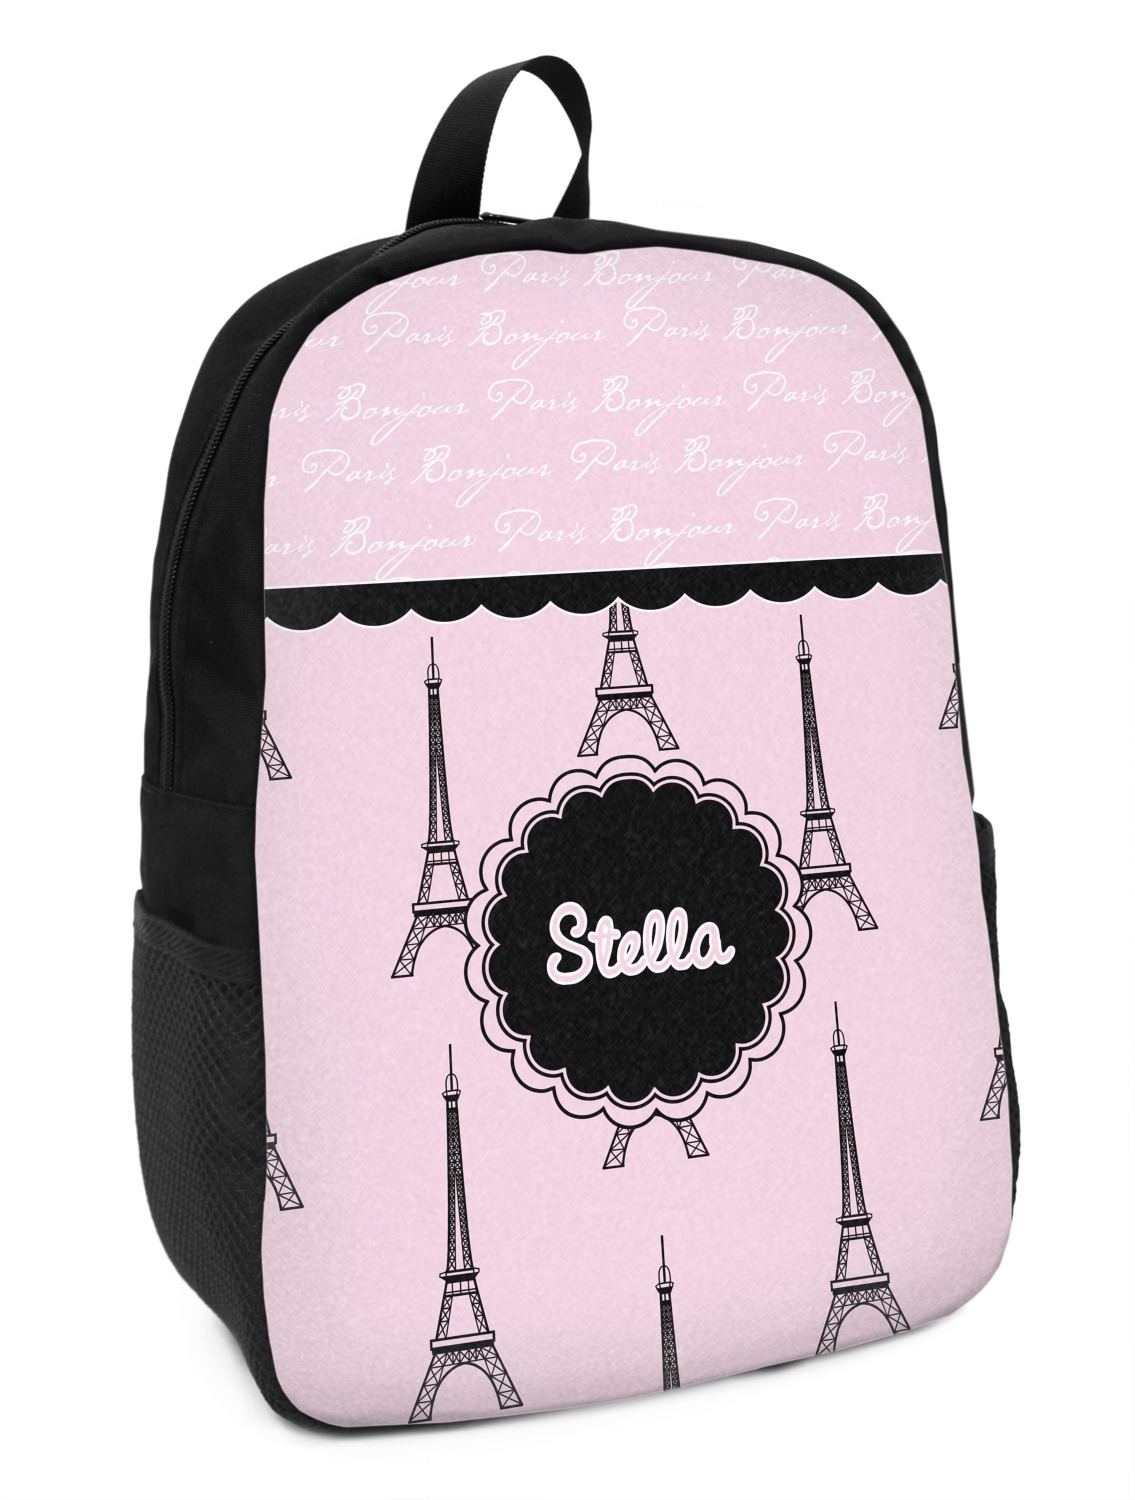 Personalized Mesh Backpacks - CEAGESP 9aa51a828